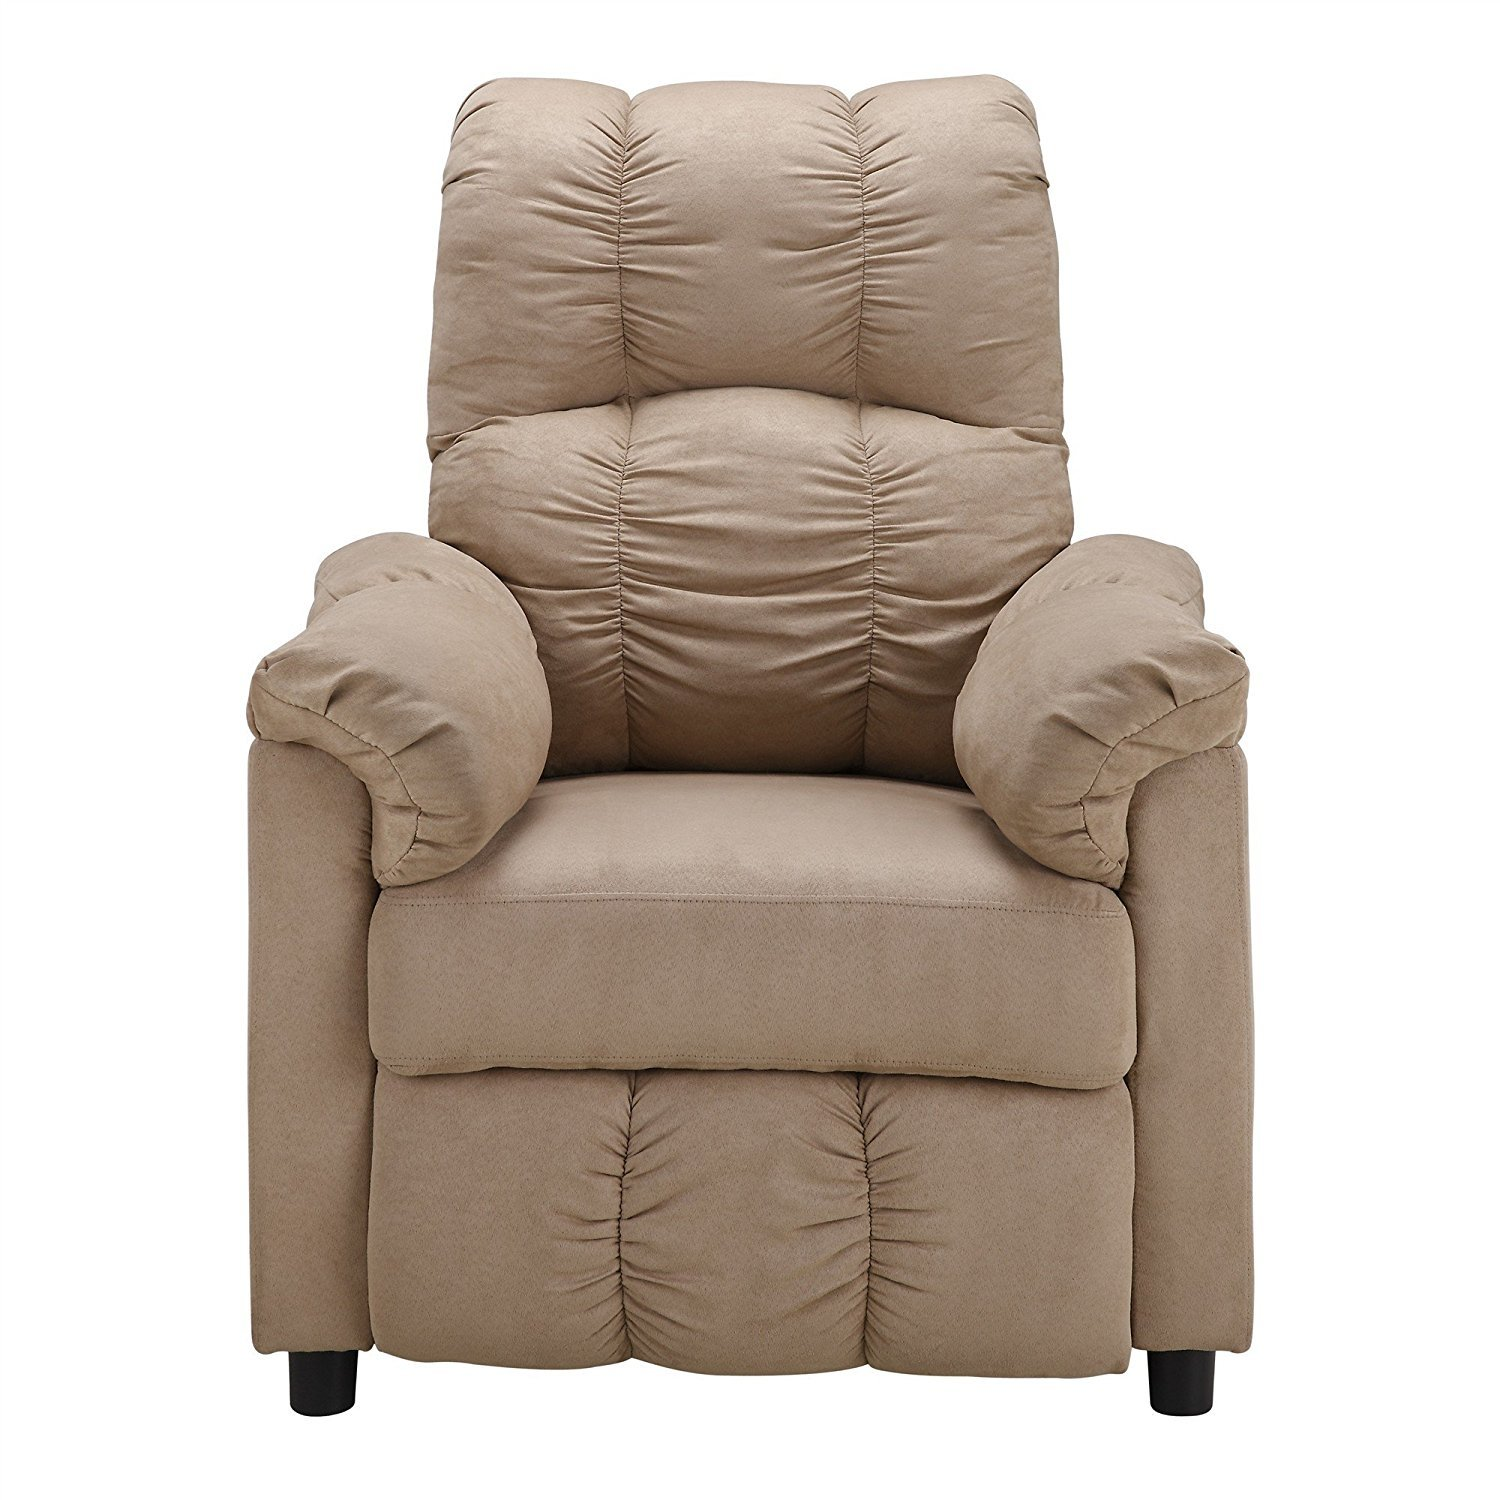 Dorel Living Slim Recliner, Beige - Amazon.com: Chairs - Living Room Furniture: Home & Kitchen